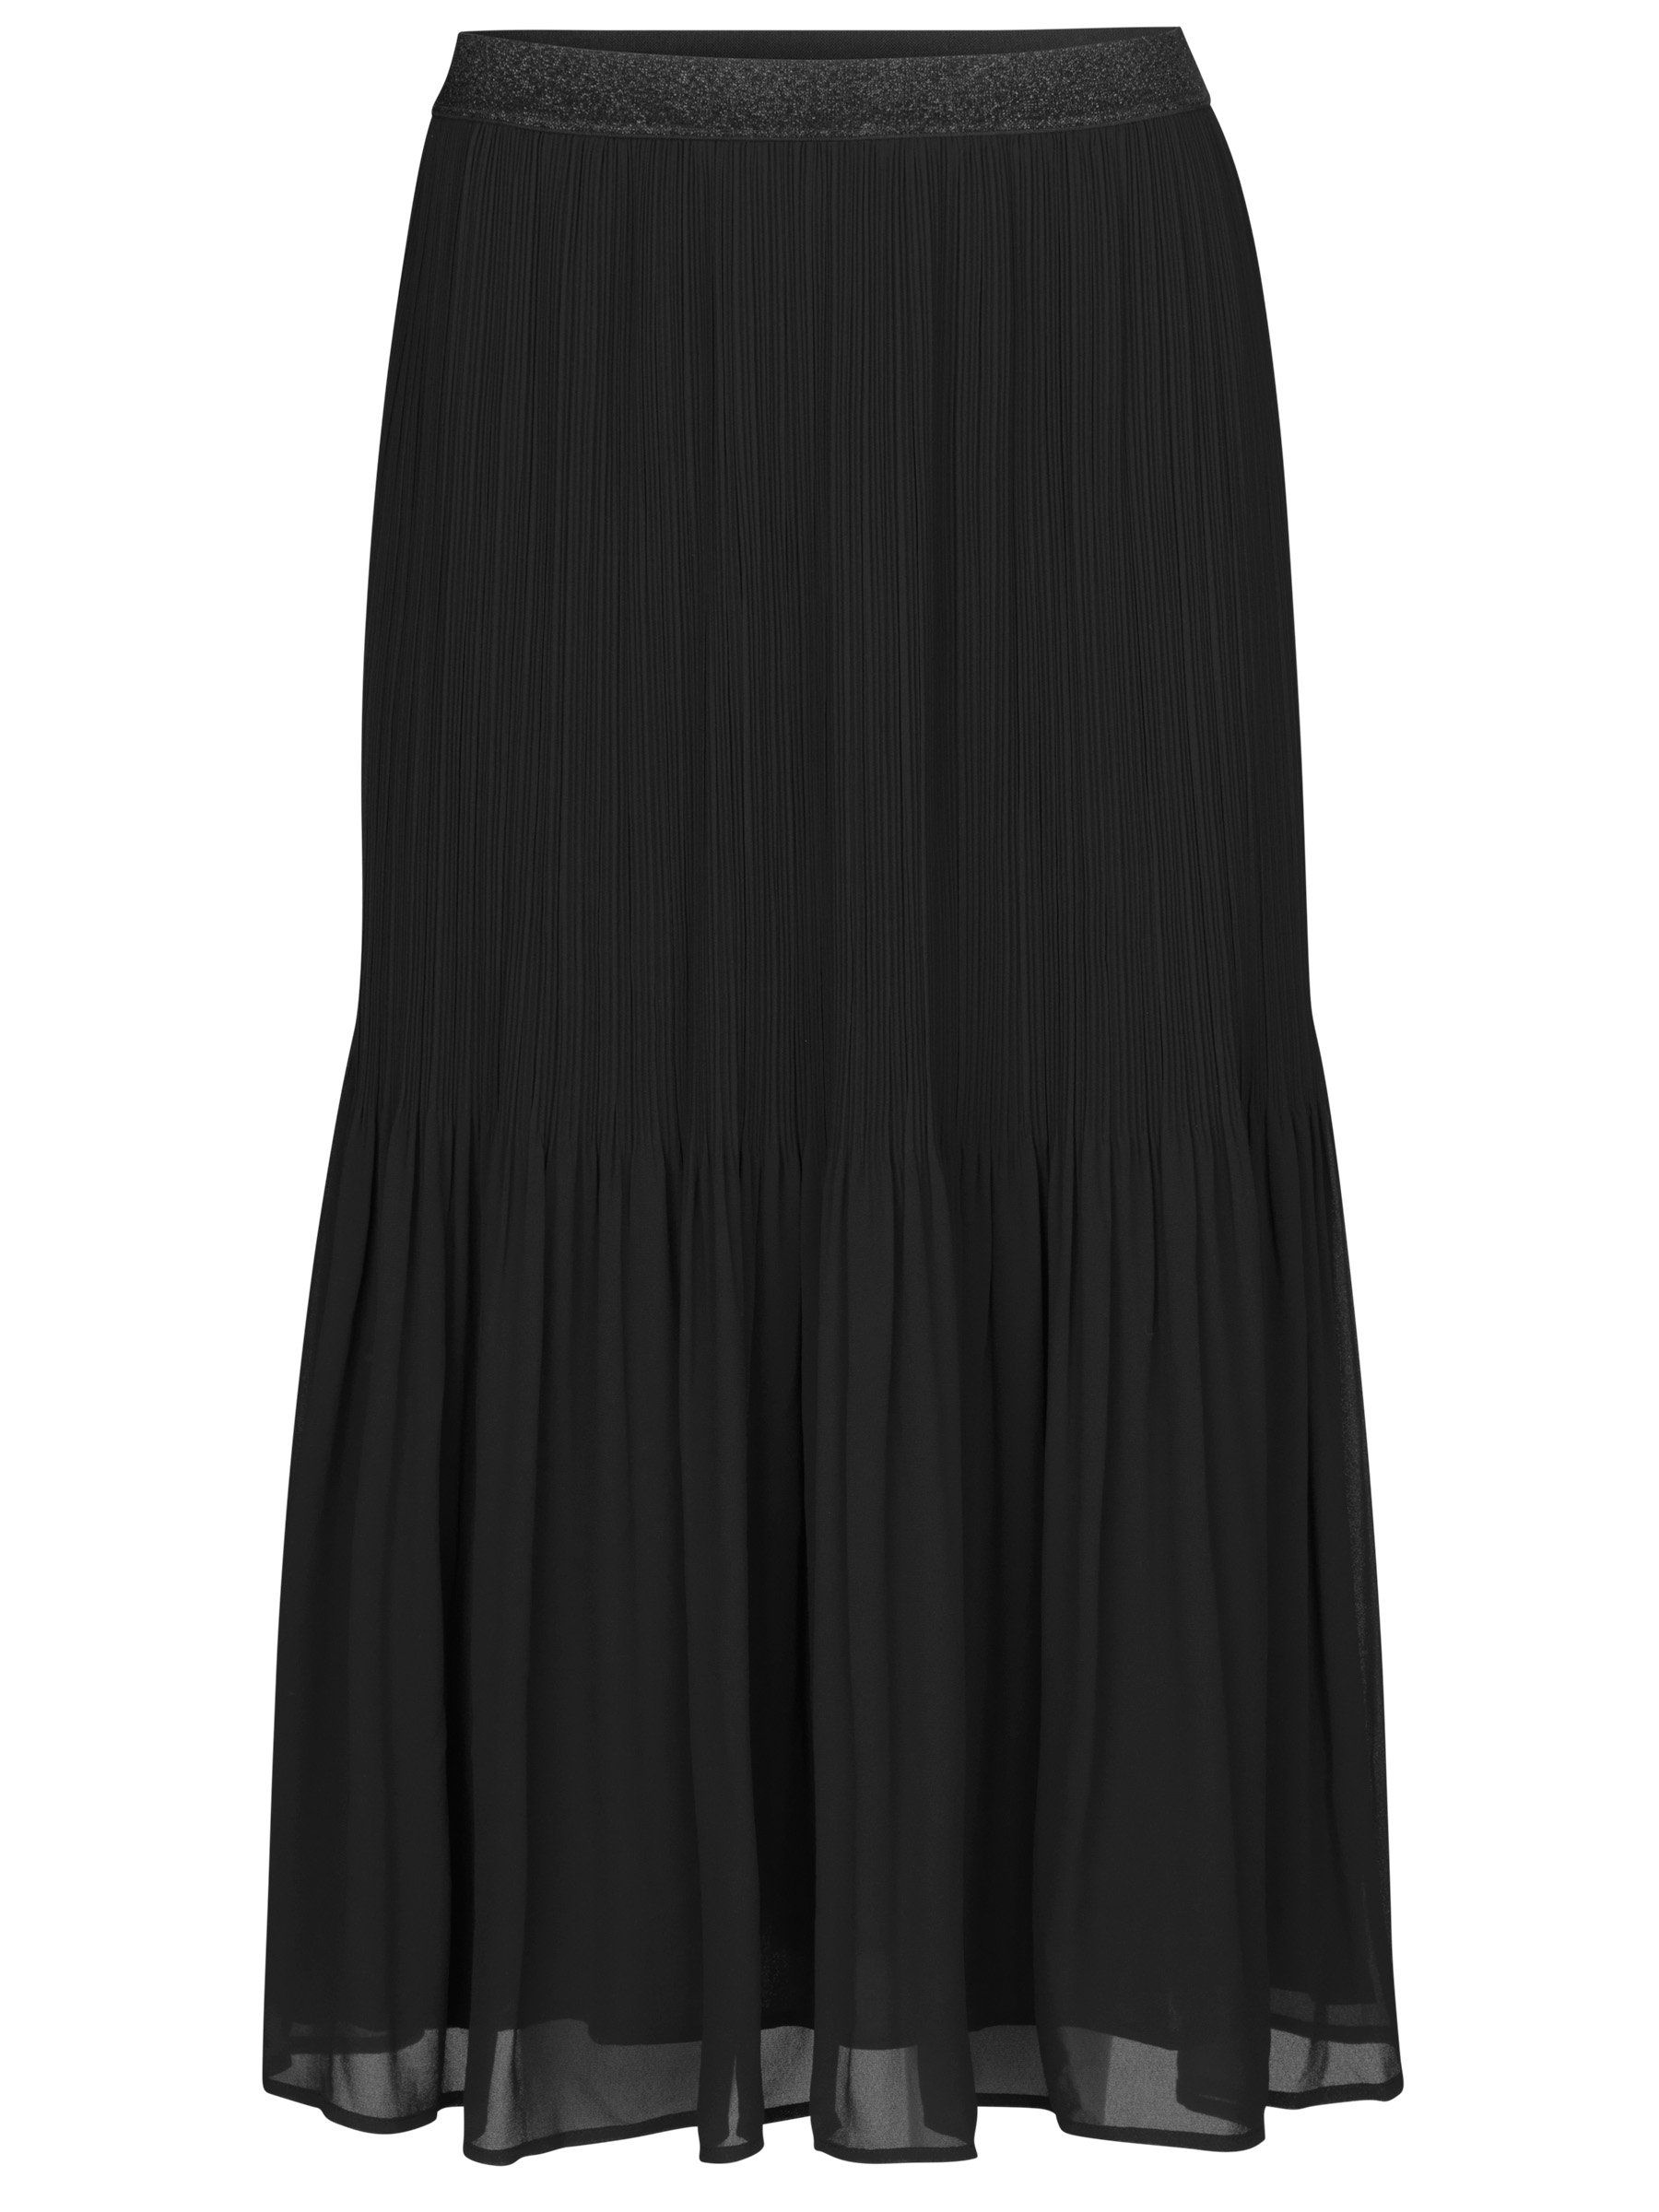 Rosemunde Skirt in black 4878 36